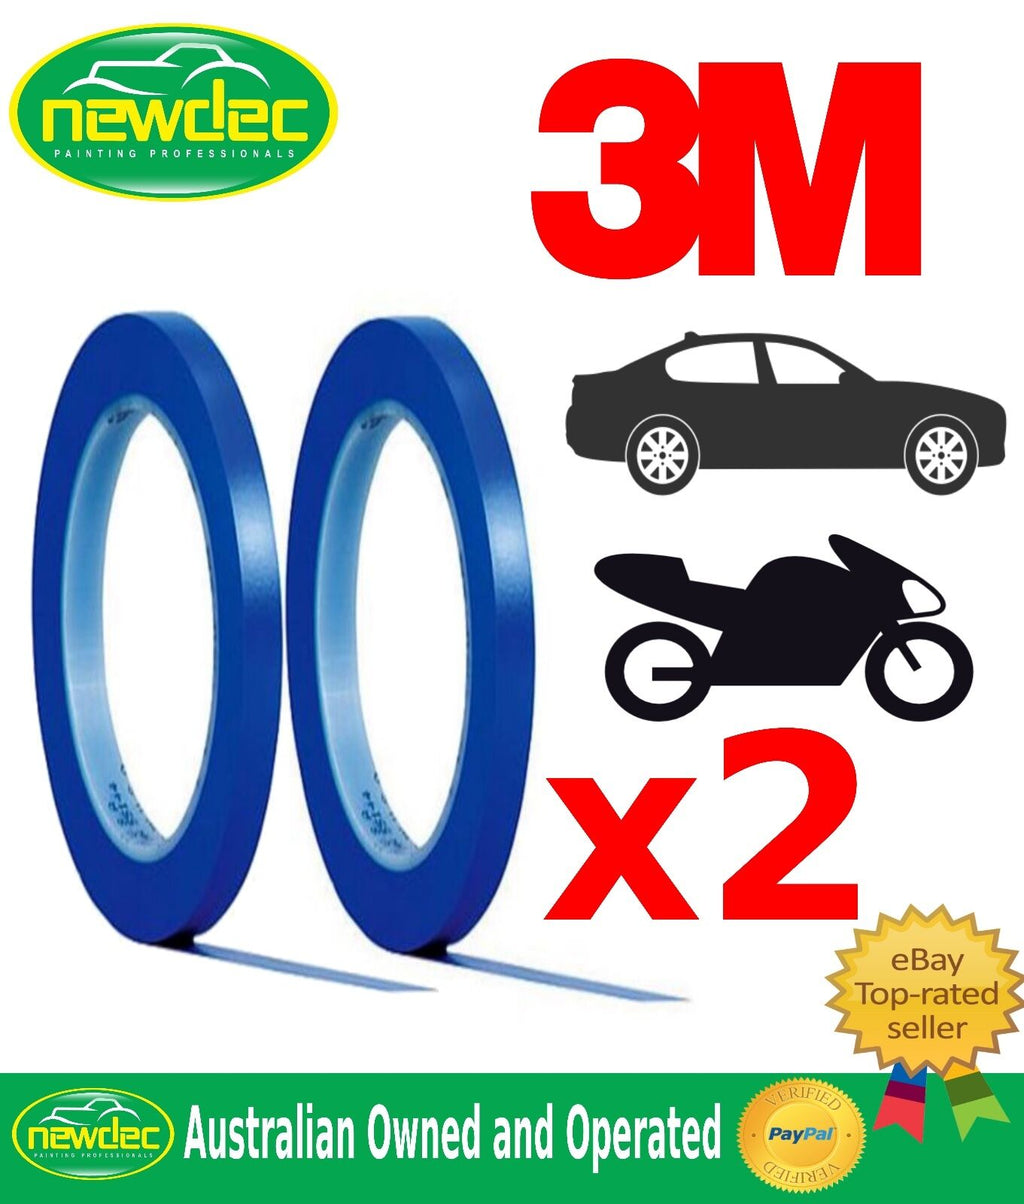 3M FINE LINE VINYL TAPE 3M 471 BLUE 6 MM X 33 METERS 2 ROLLS FOR EDGE PAINTING